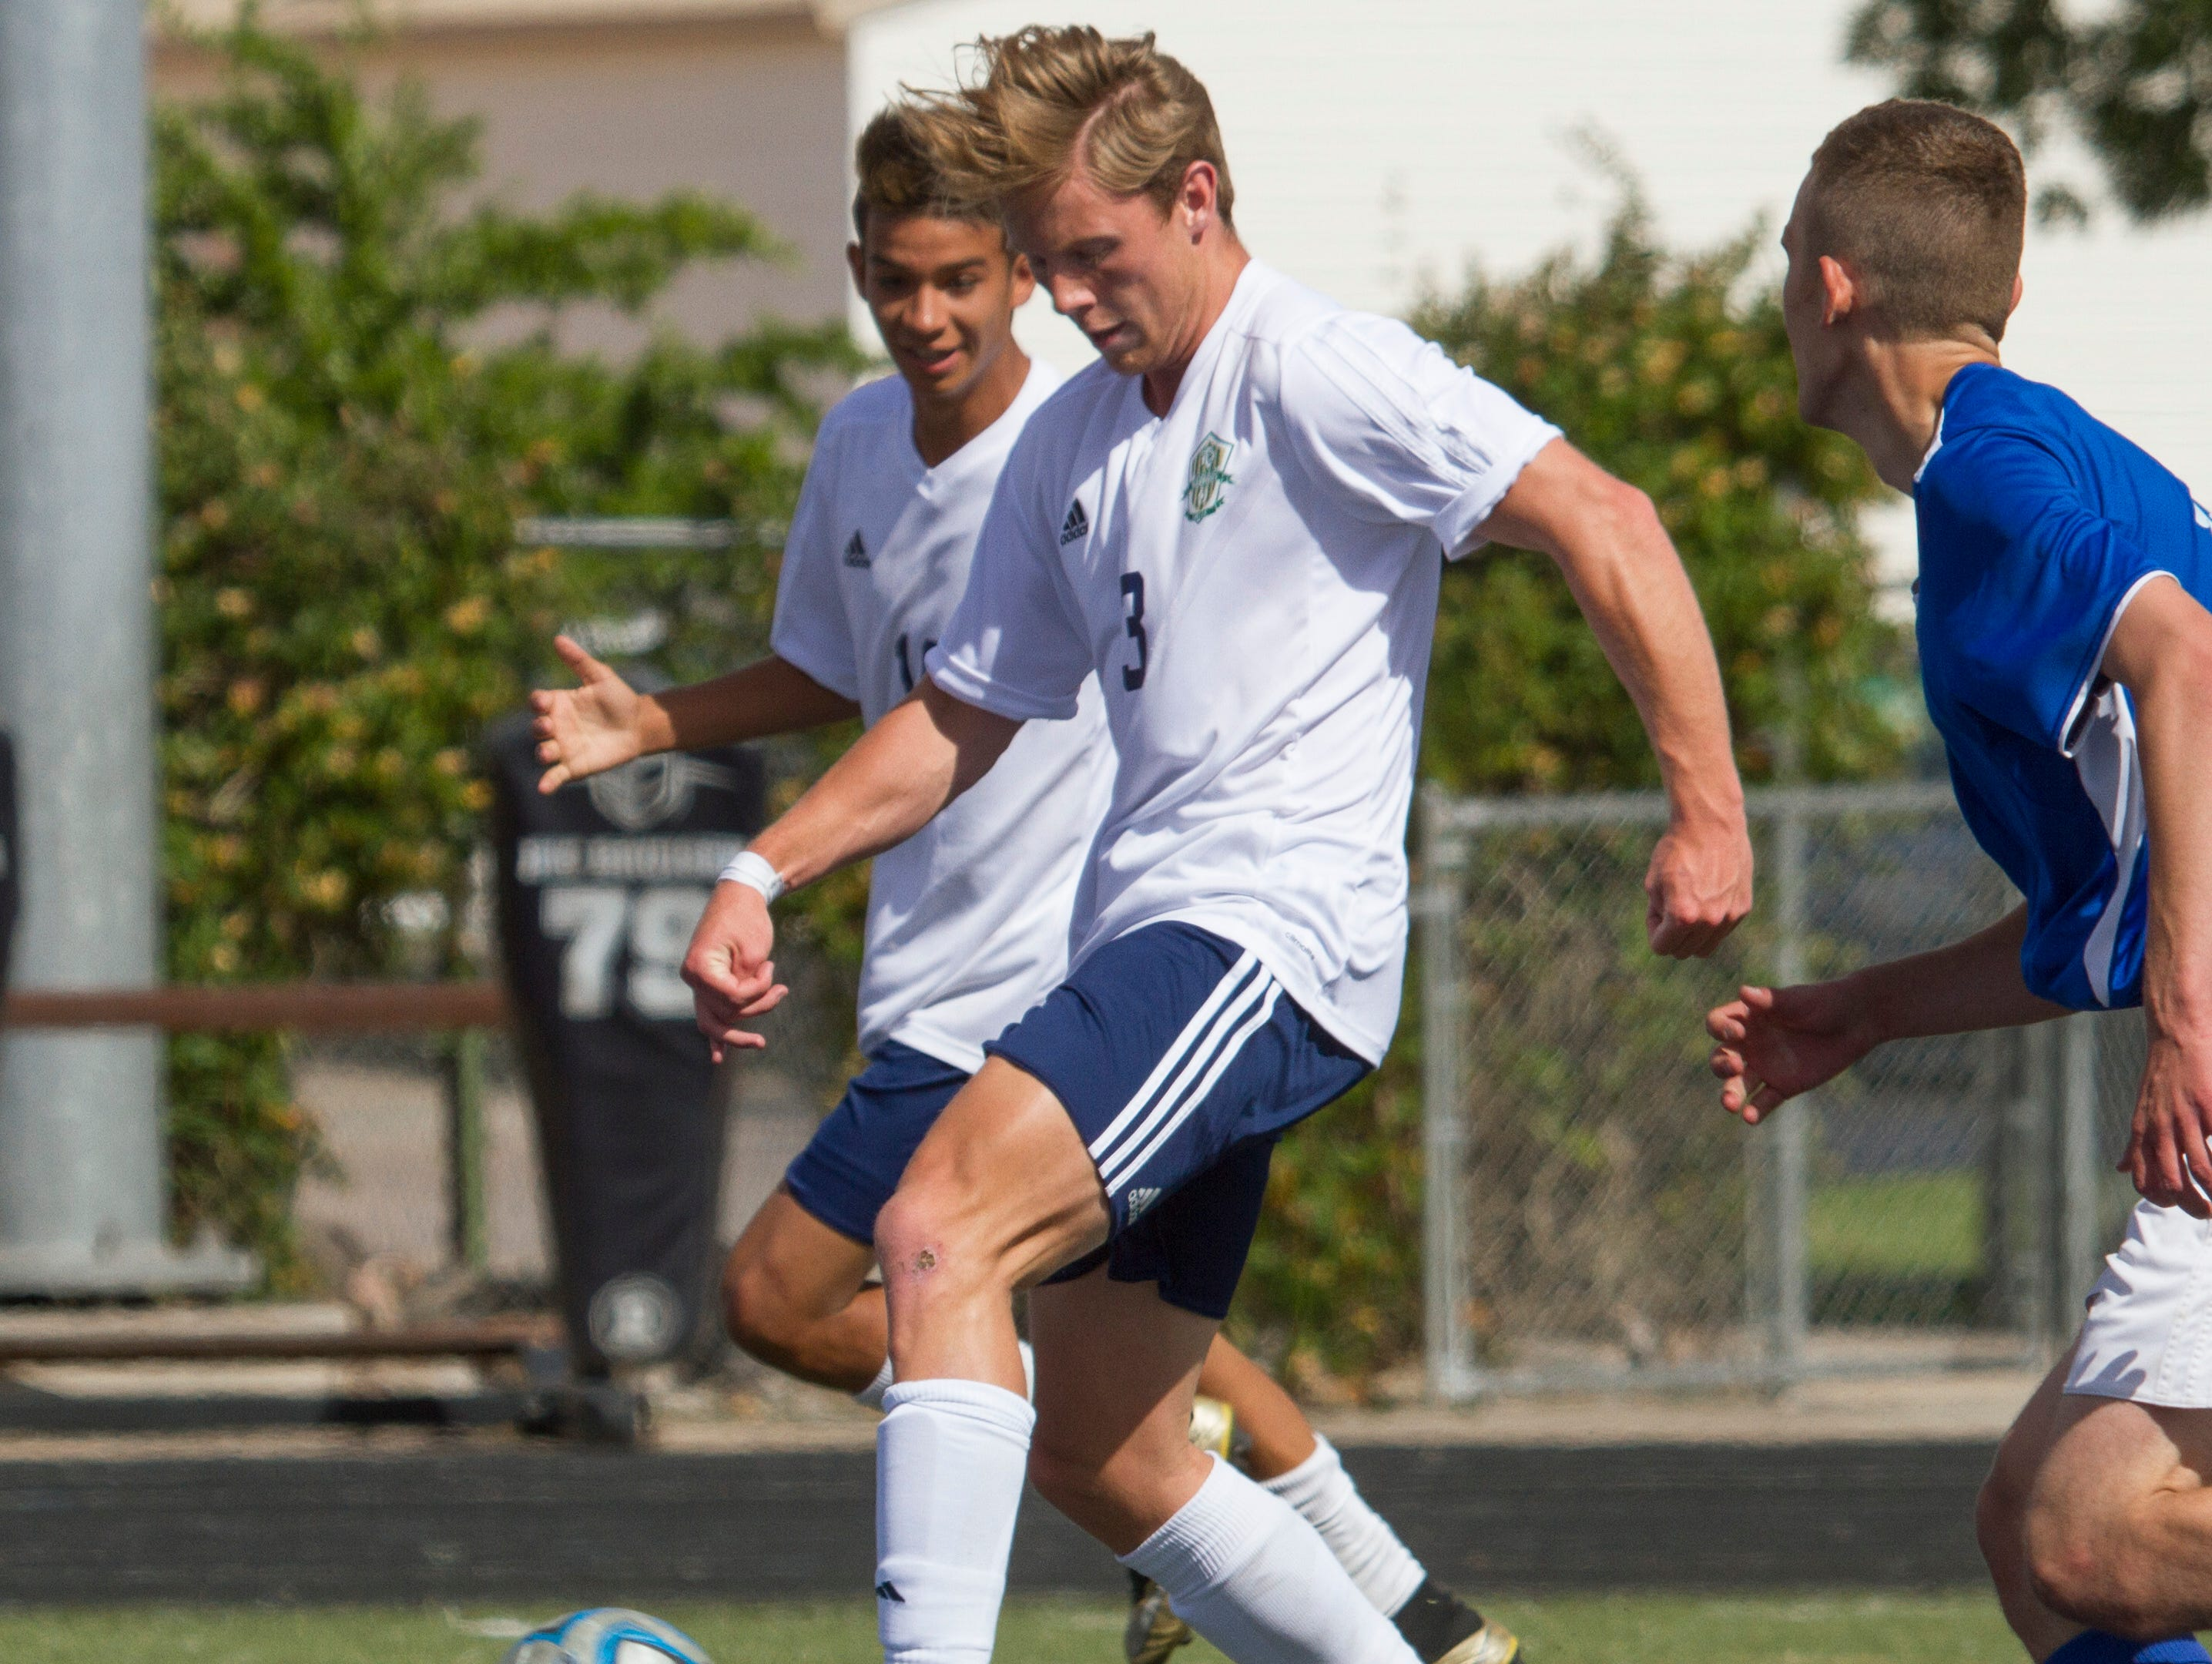 Snow Canyon defeated Richfield 8-0 in the first round of the 3A playoffs on Thursday. The Warriors will host Grantsville Saturday at 1 p.m. for a spot in the 3A semifinals.